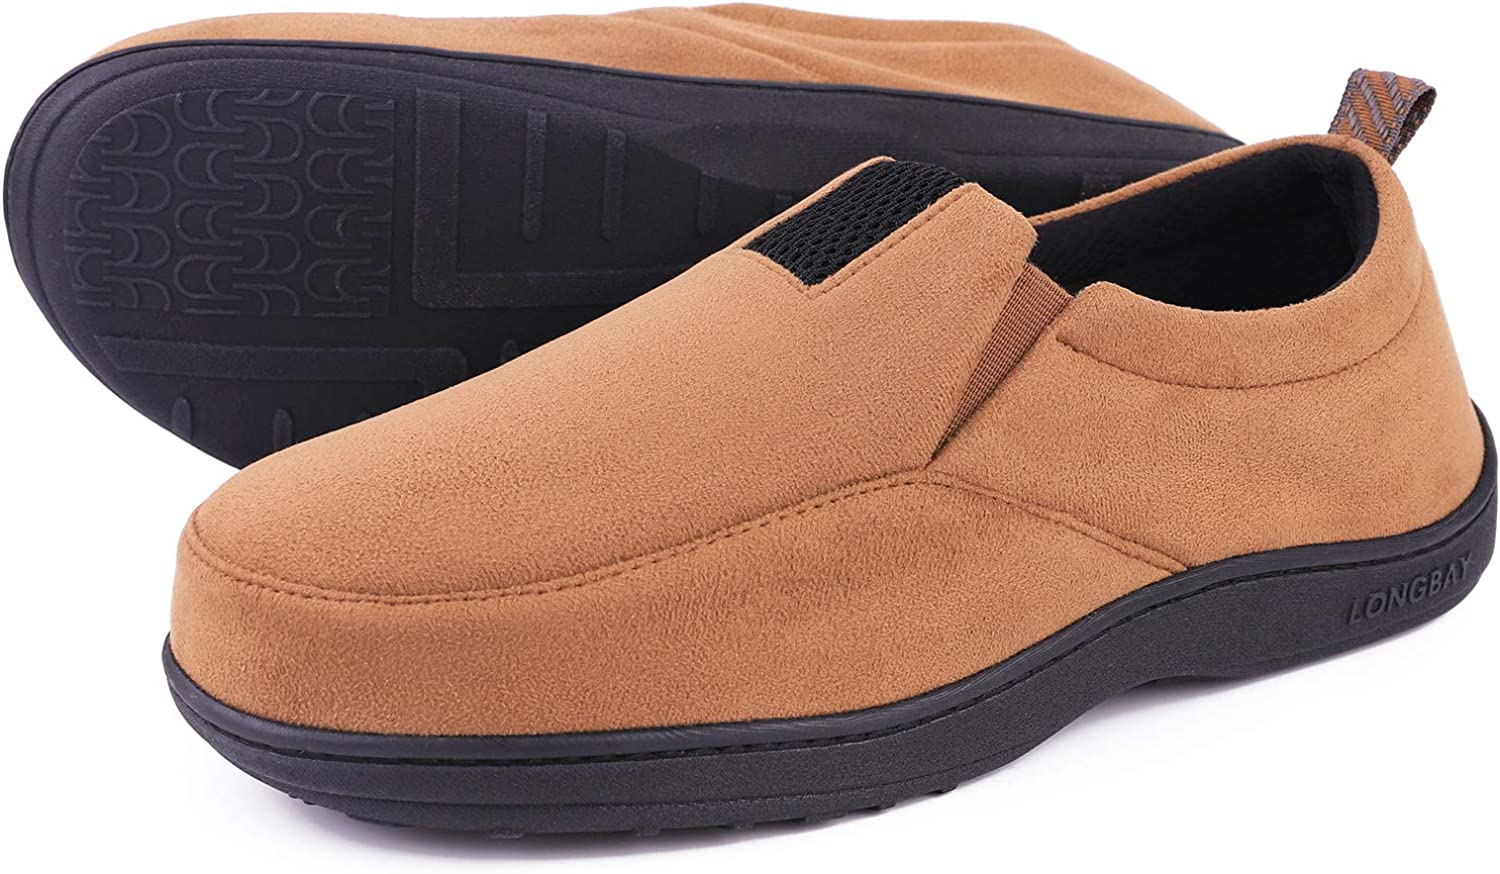 LongBay Mens Cozy Memory Foam Slippers Comfy House Shoes